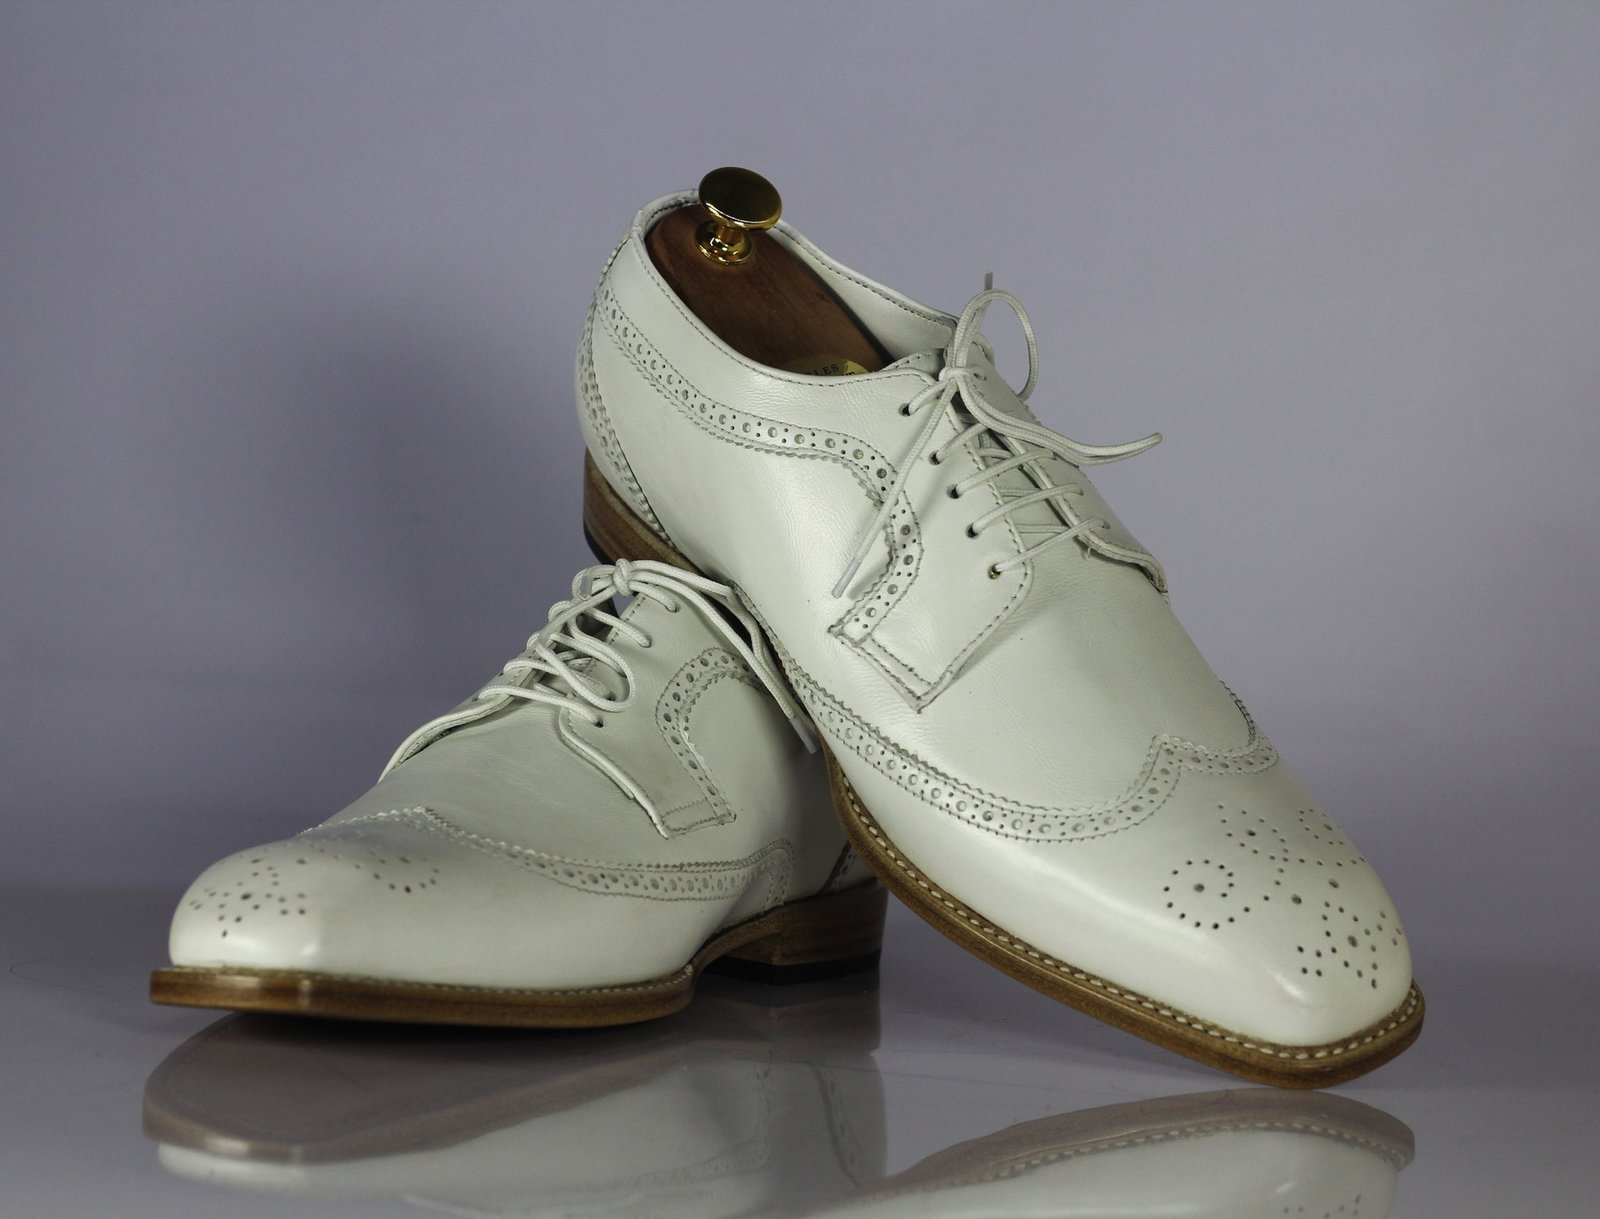 Handmade Men's White Heart Medallion Wing Tip Lace Up Dress/Formal Leather Shoes